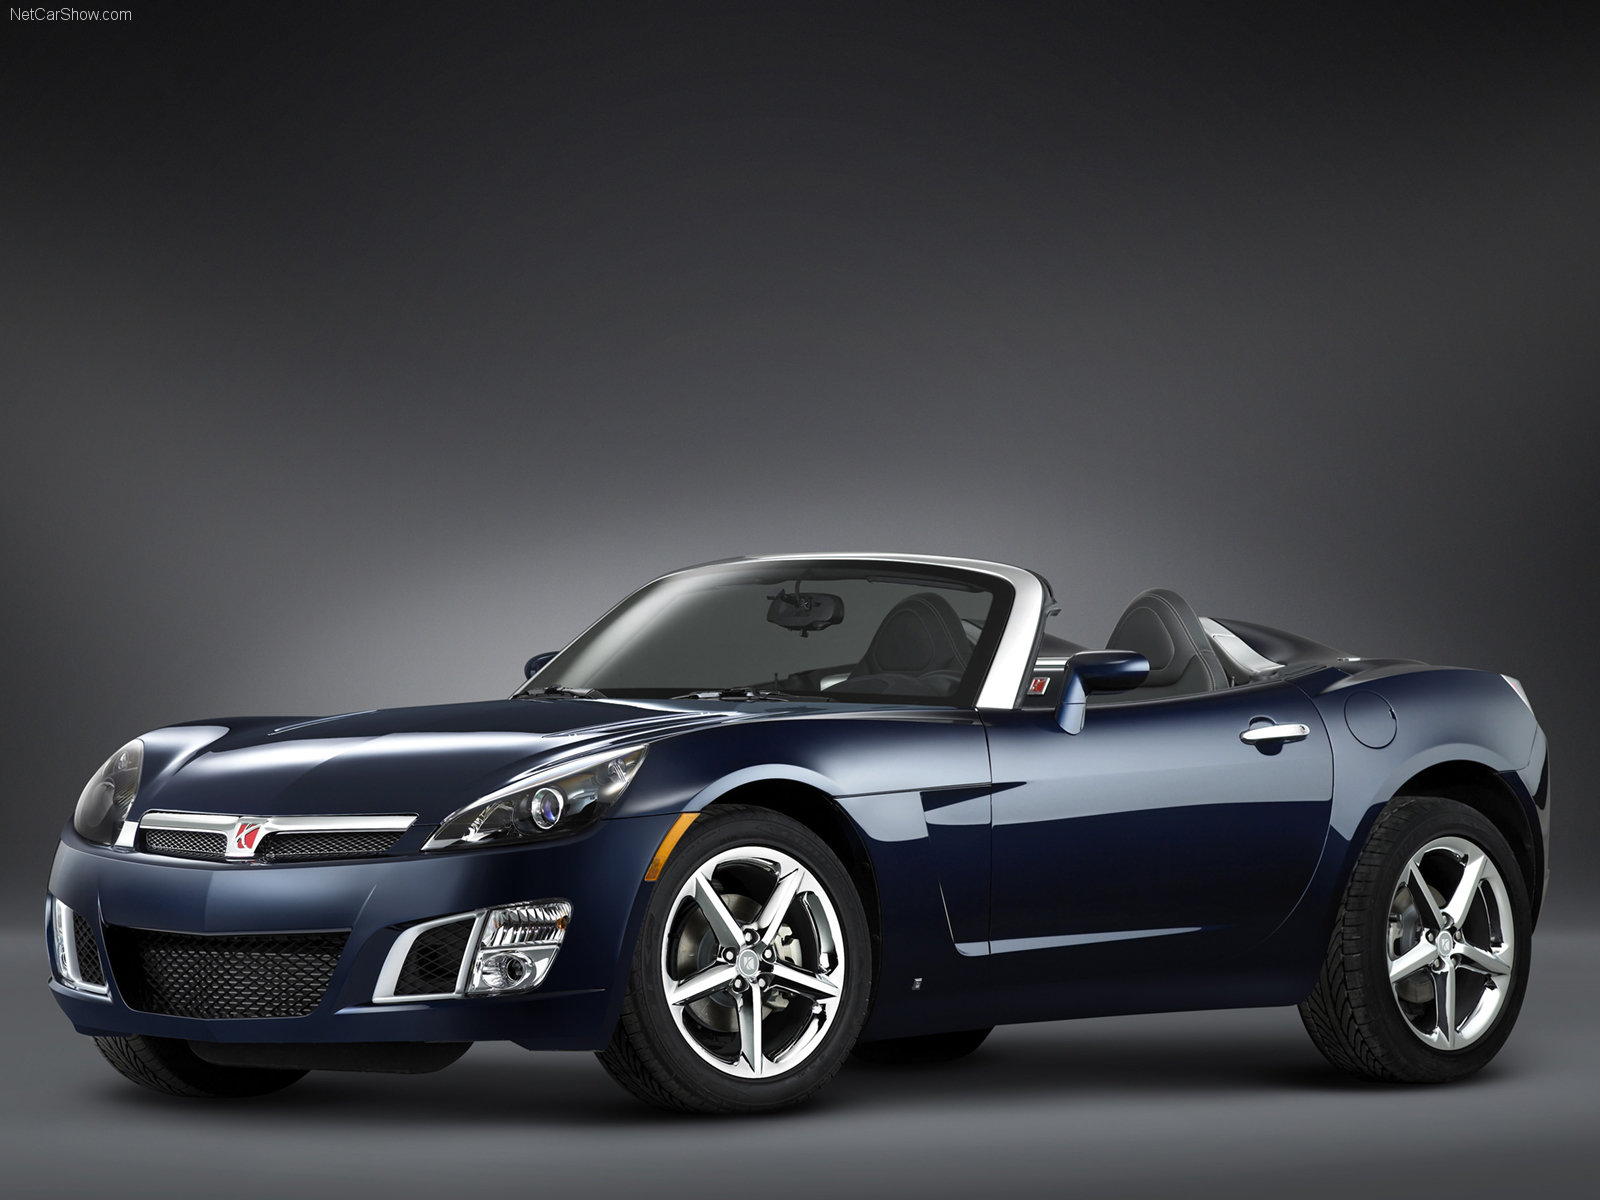 3dtuning of saturn sky coupe 2007 unique on line car configurator for more than. Black Bedroom Furniture Sets. Home Design Ideas